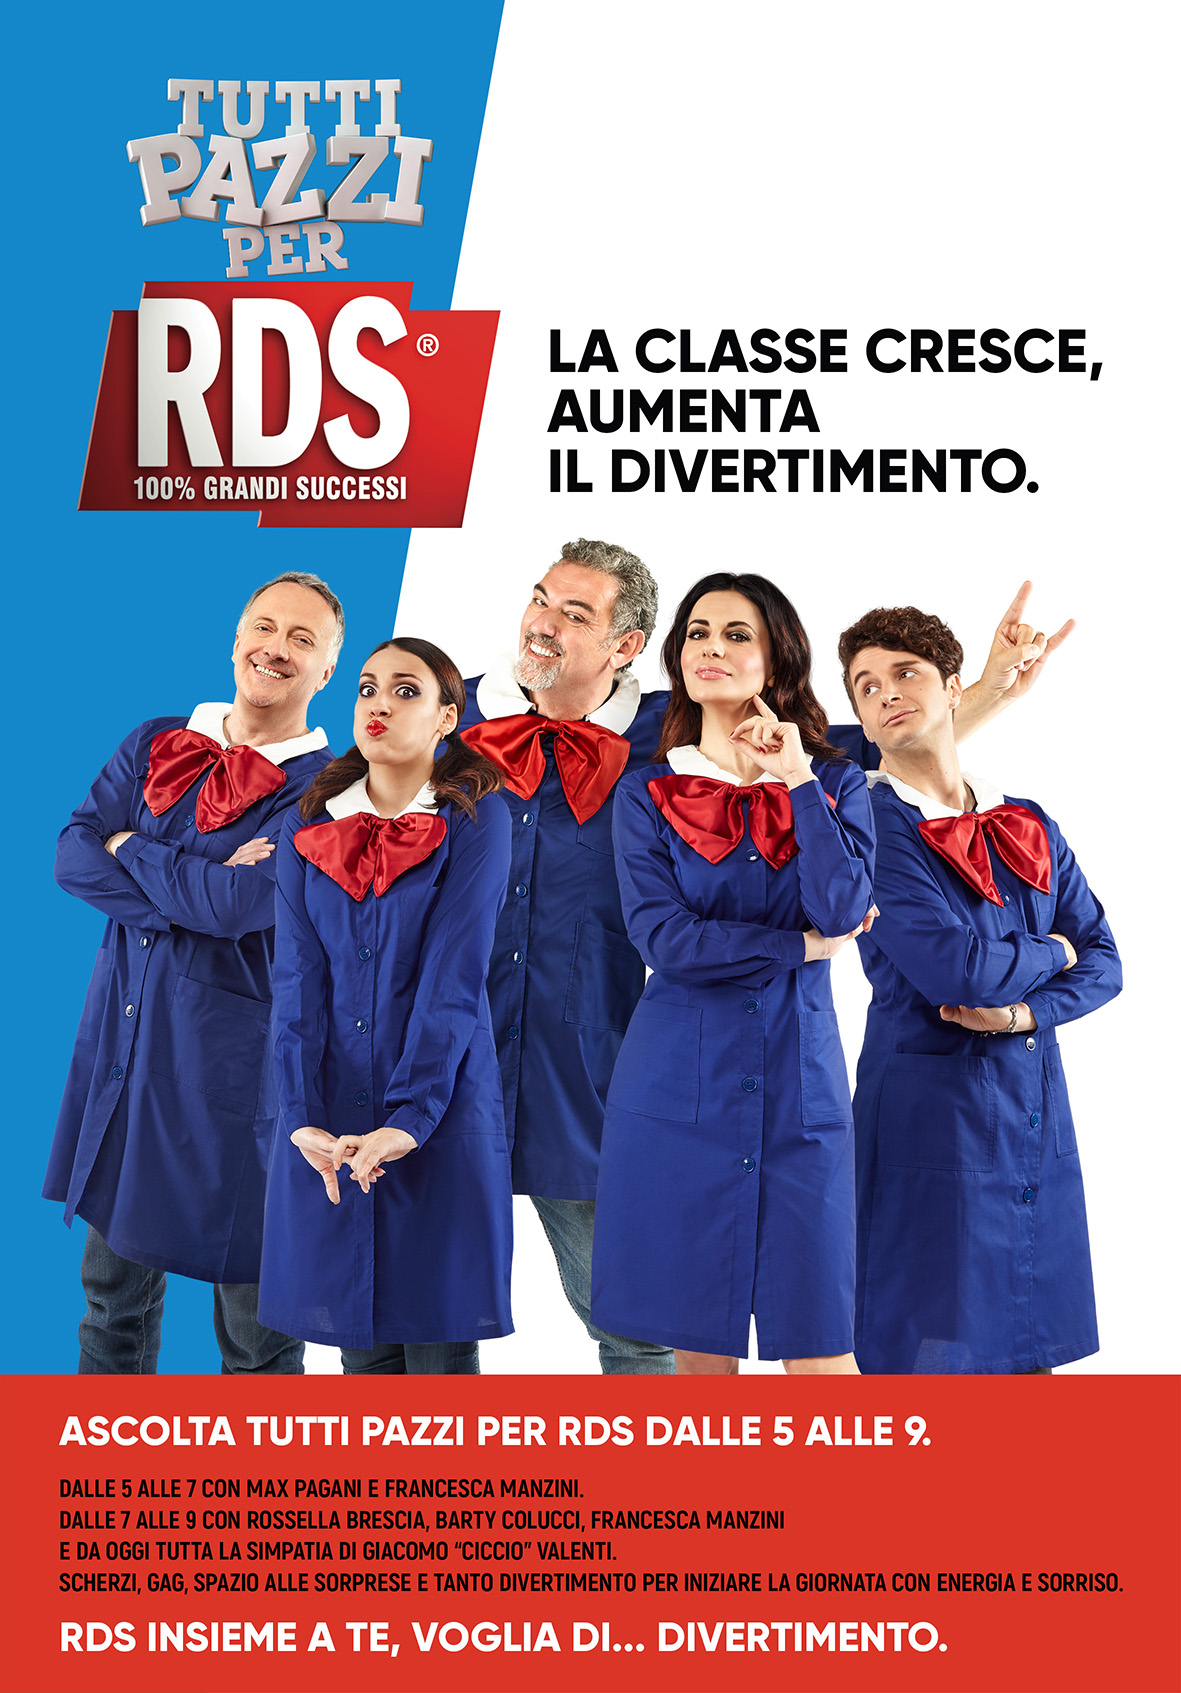 RDS_Gruppo TuttipazziperRds (1)